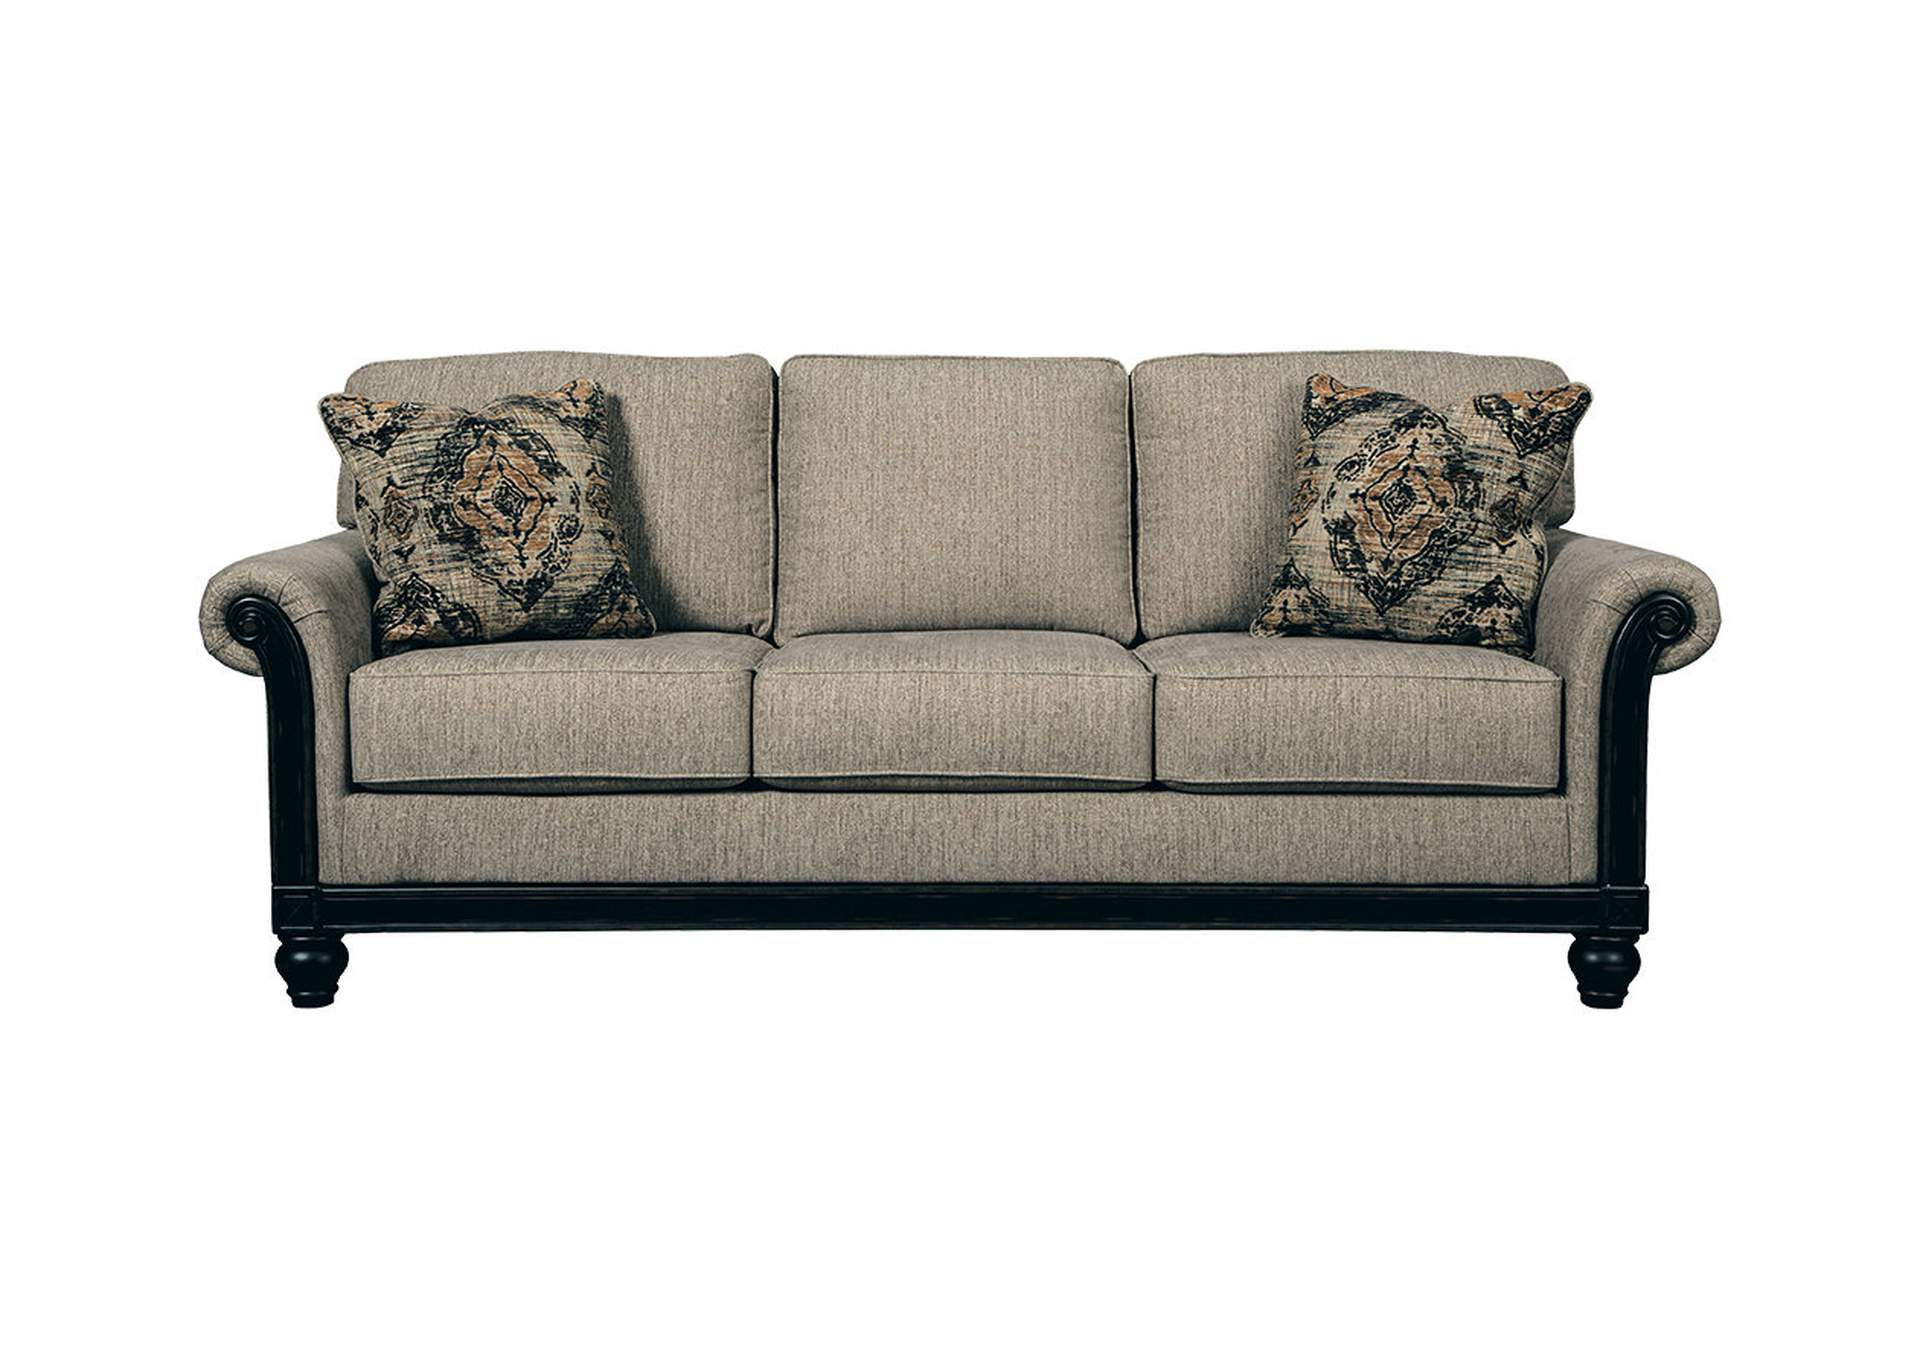 Blackwood Taupe Queen Sofa Sleeper,Signature Design By Ashley